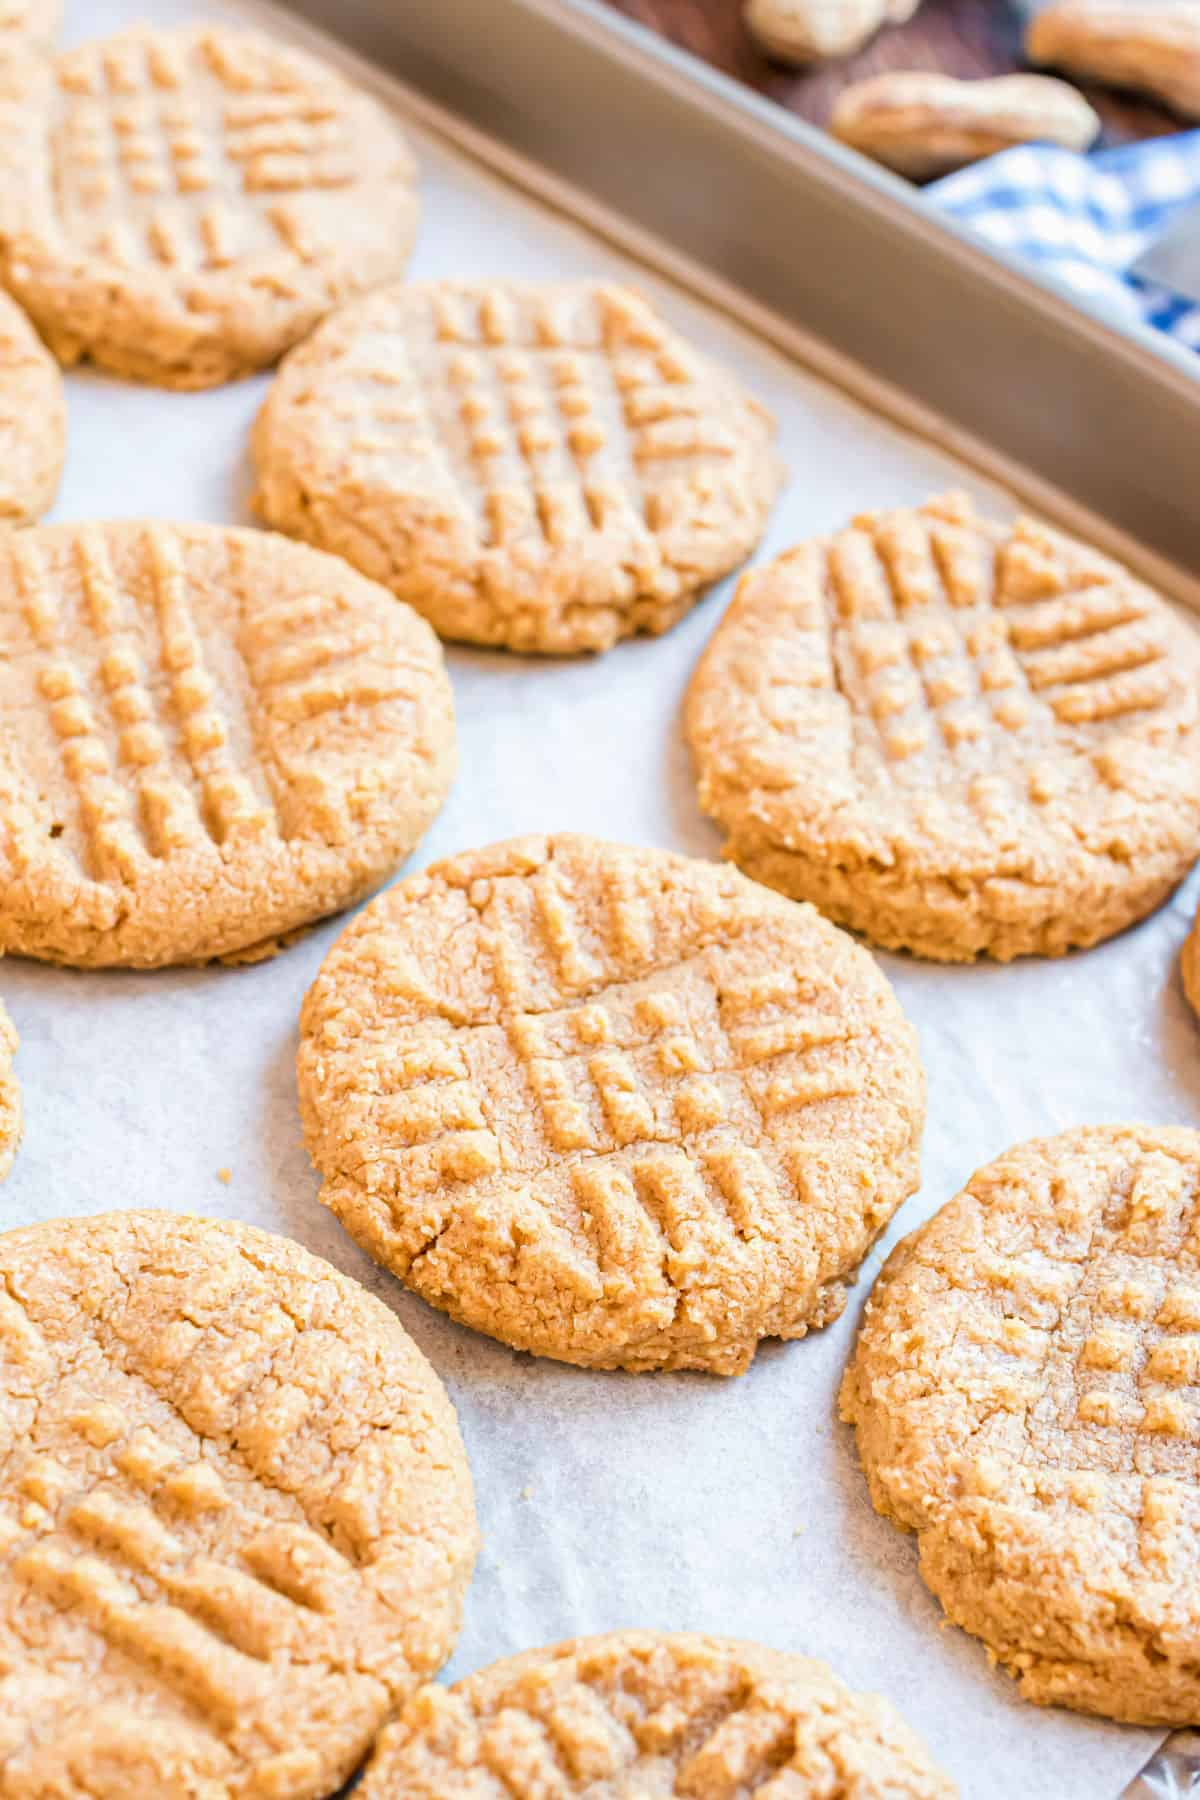 Peanut butter cookies on a parchment paper lined cookie sheet.